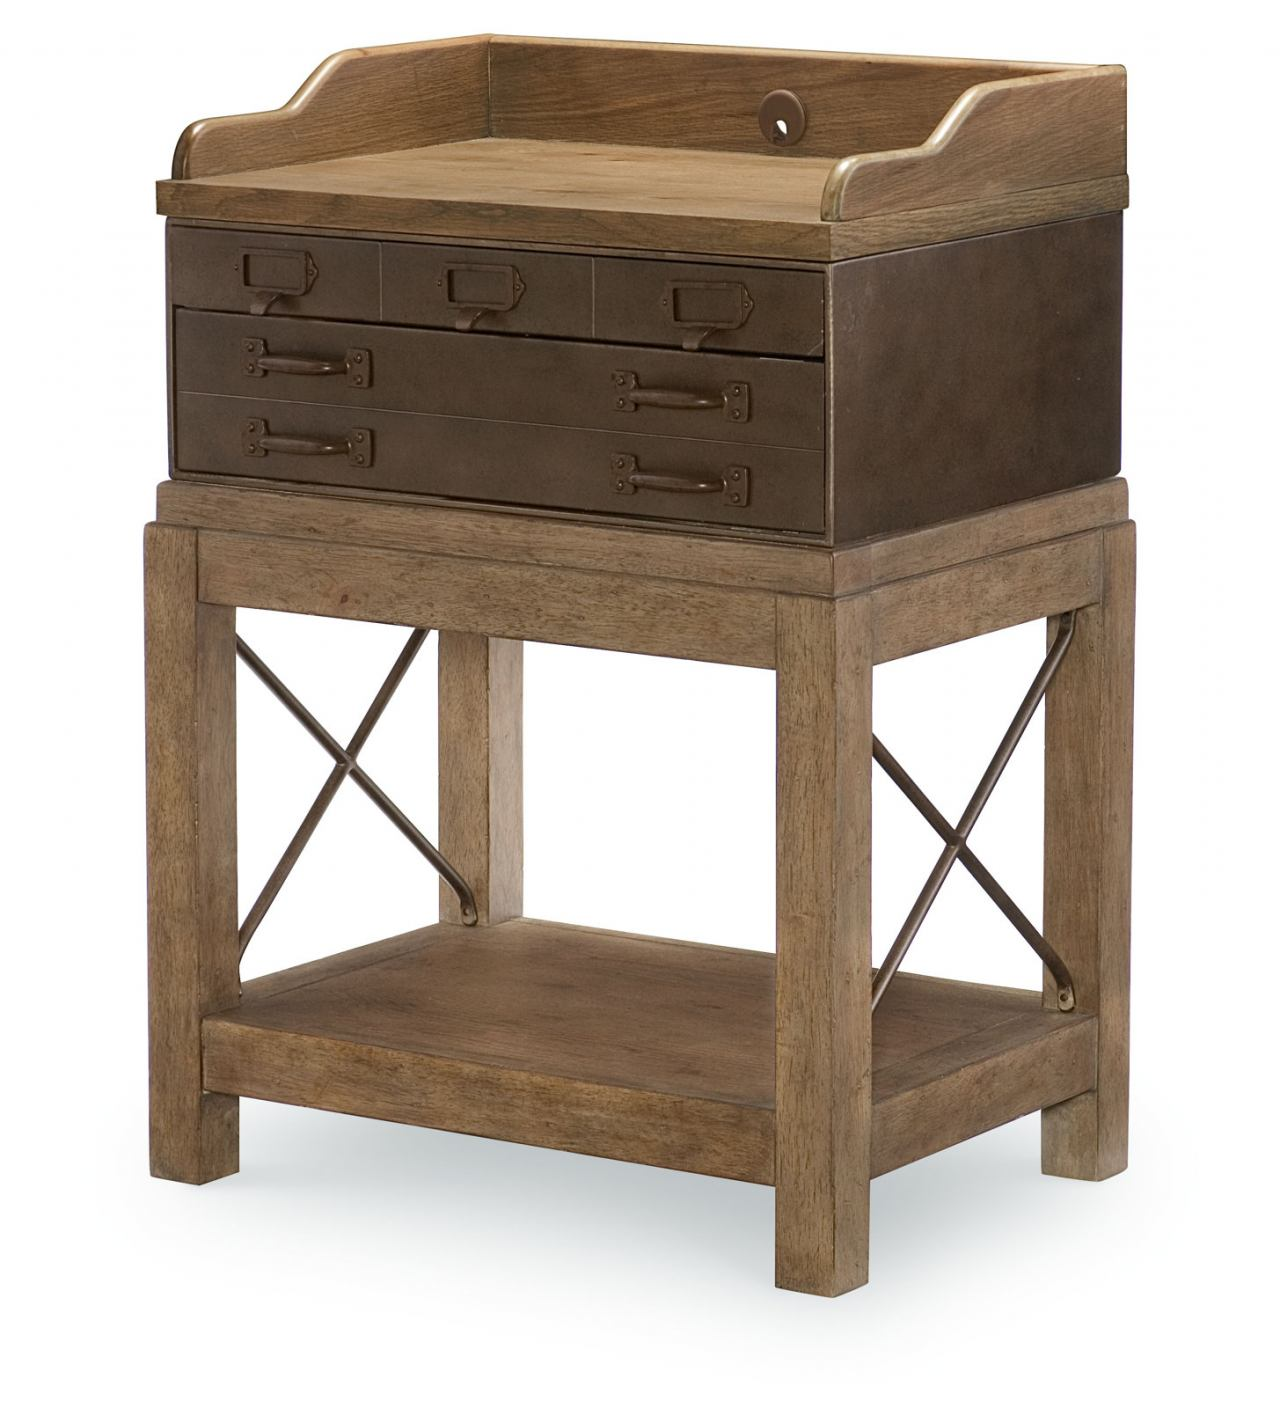 Legacy Classic Metalworks Bedside Chest in Factory Chic 5610-3200 CODE:UNIV20 for 20% Off